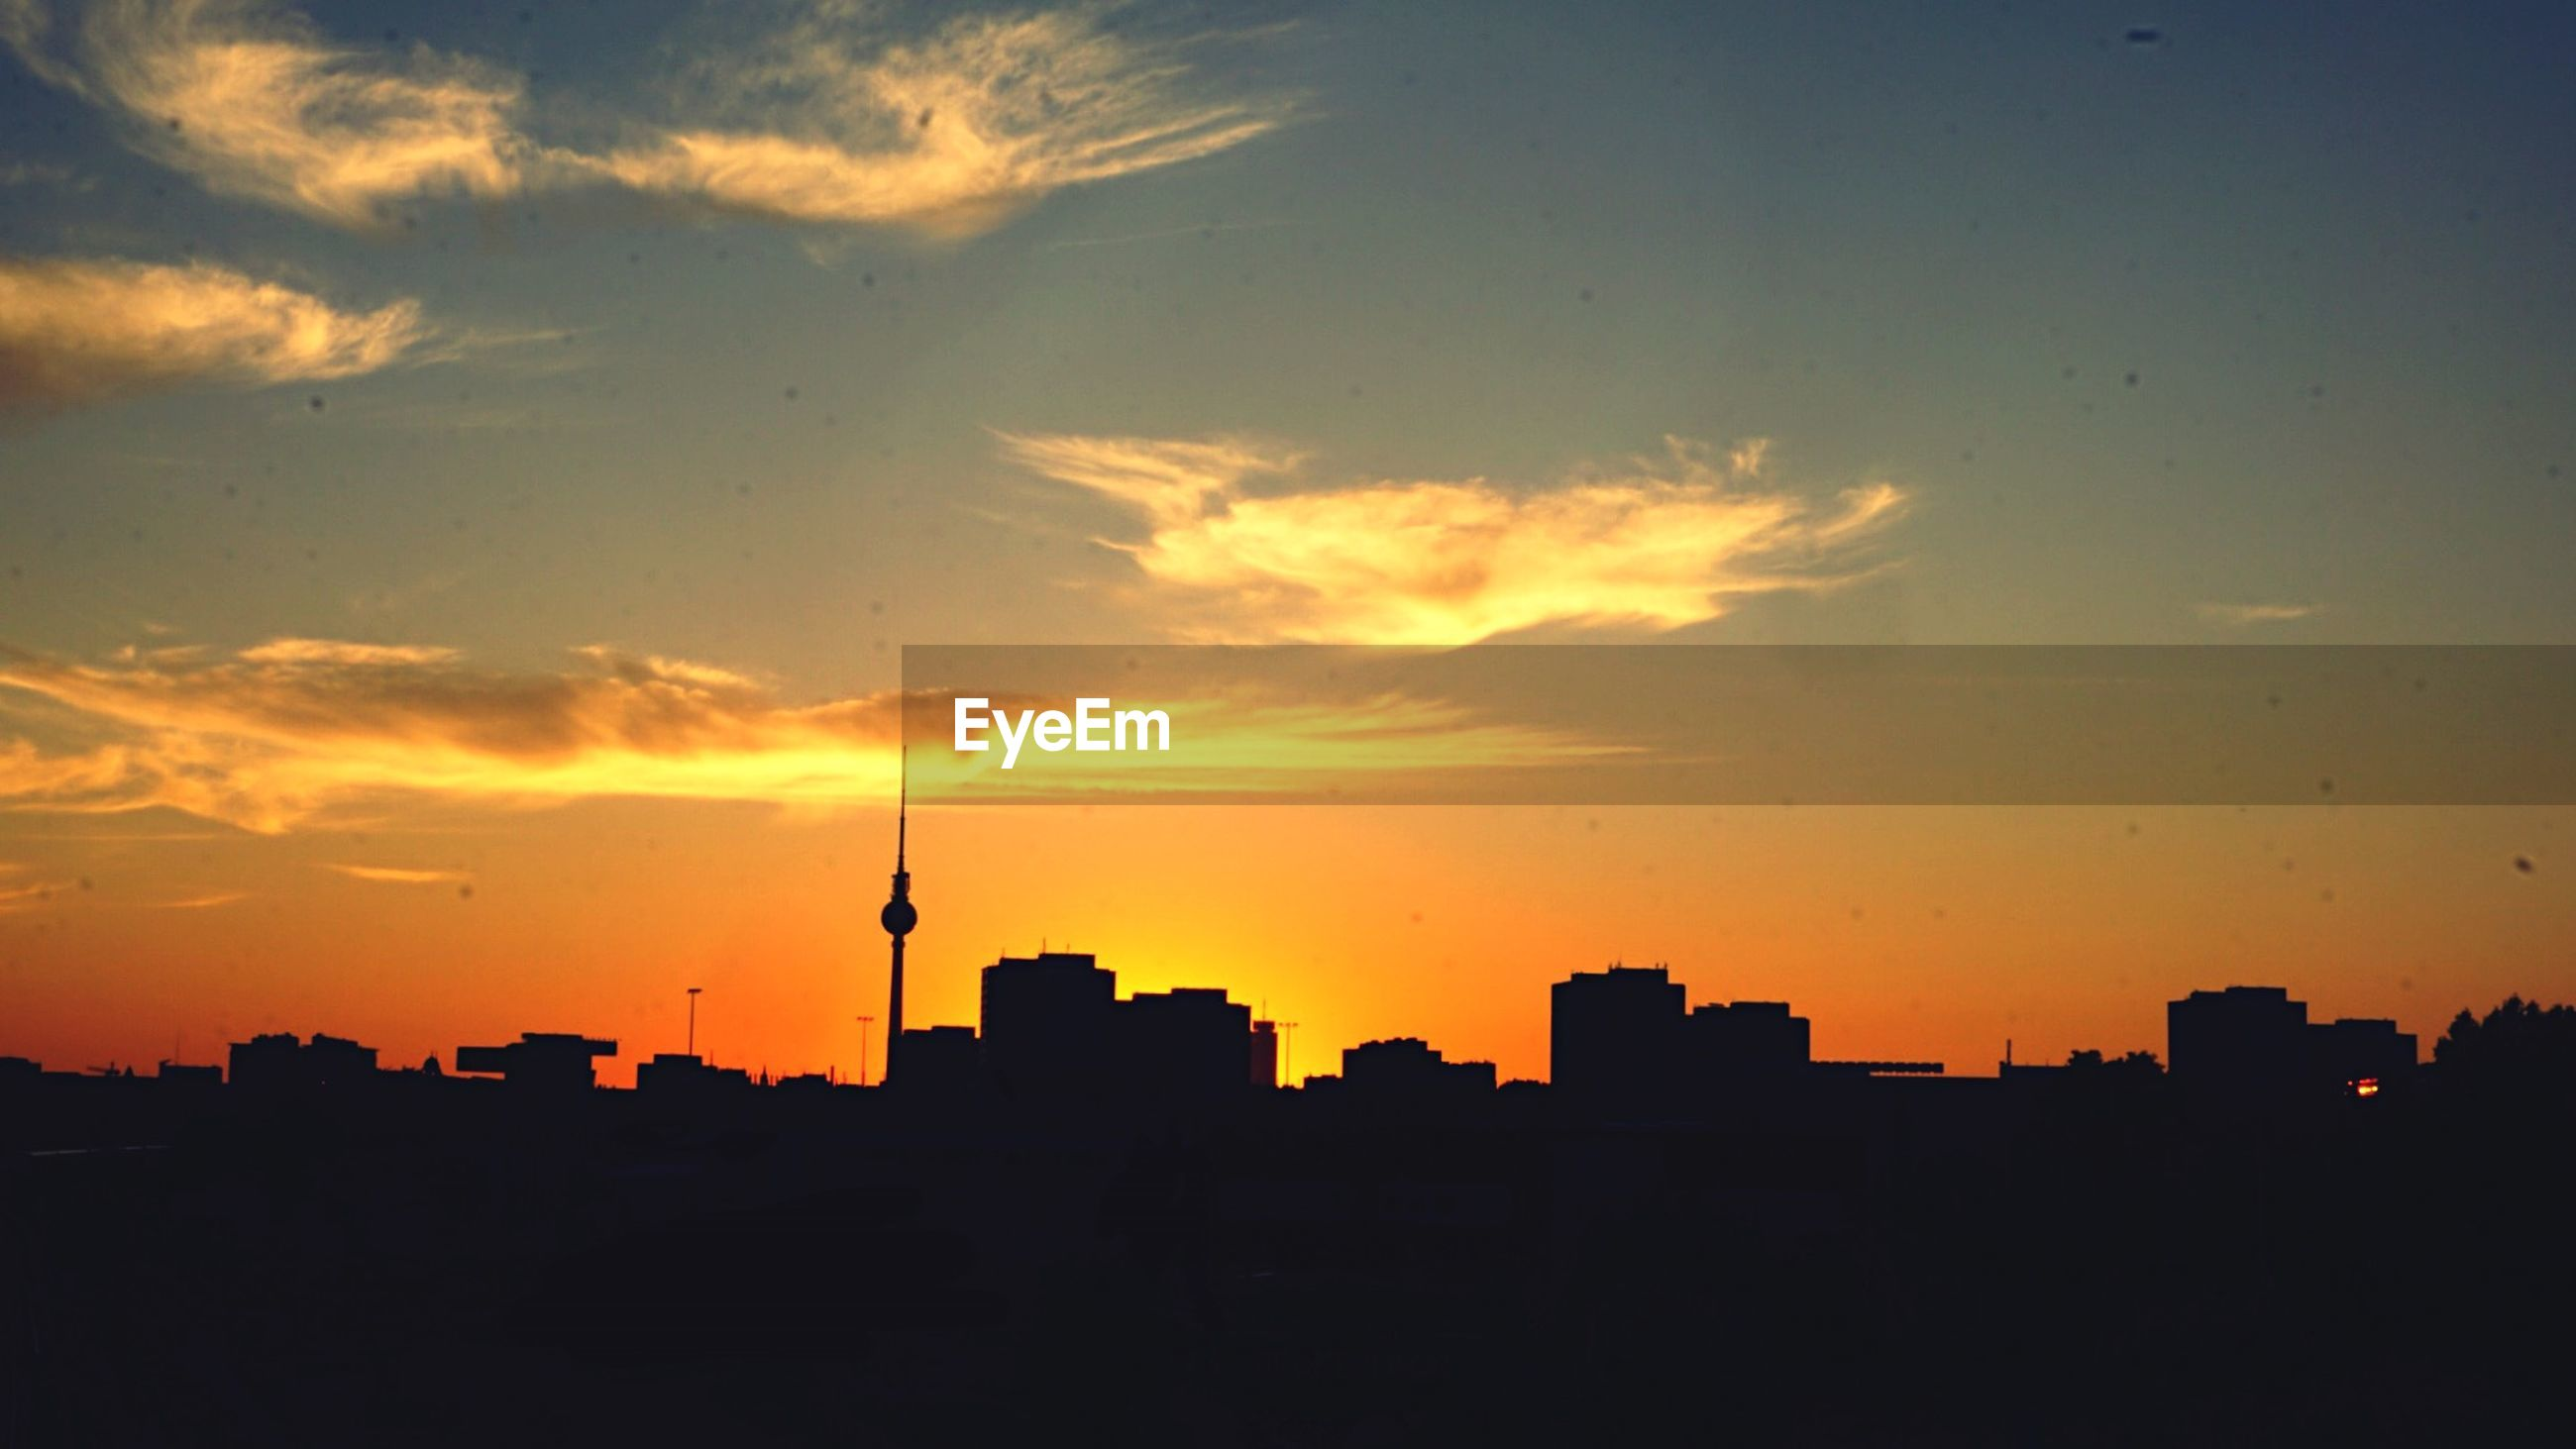 Silhouette city with fernsehturm against orange sky